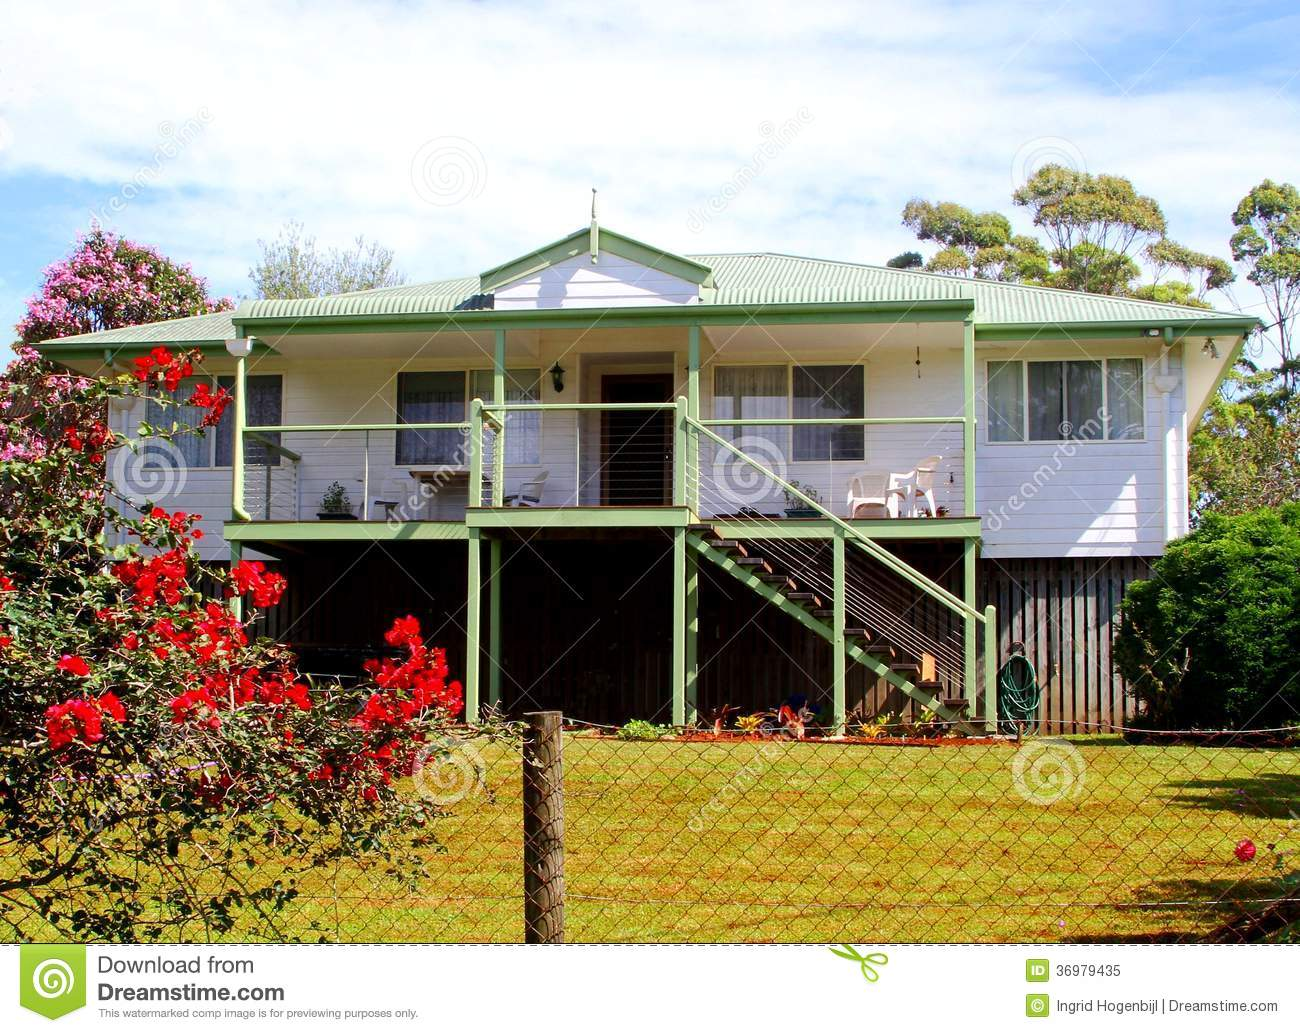 Wooden house with veranda and a garden with blooming flowers in tamborine mountains goldcoast near brisbane in queensland australia